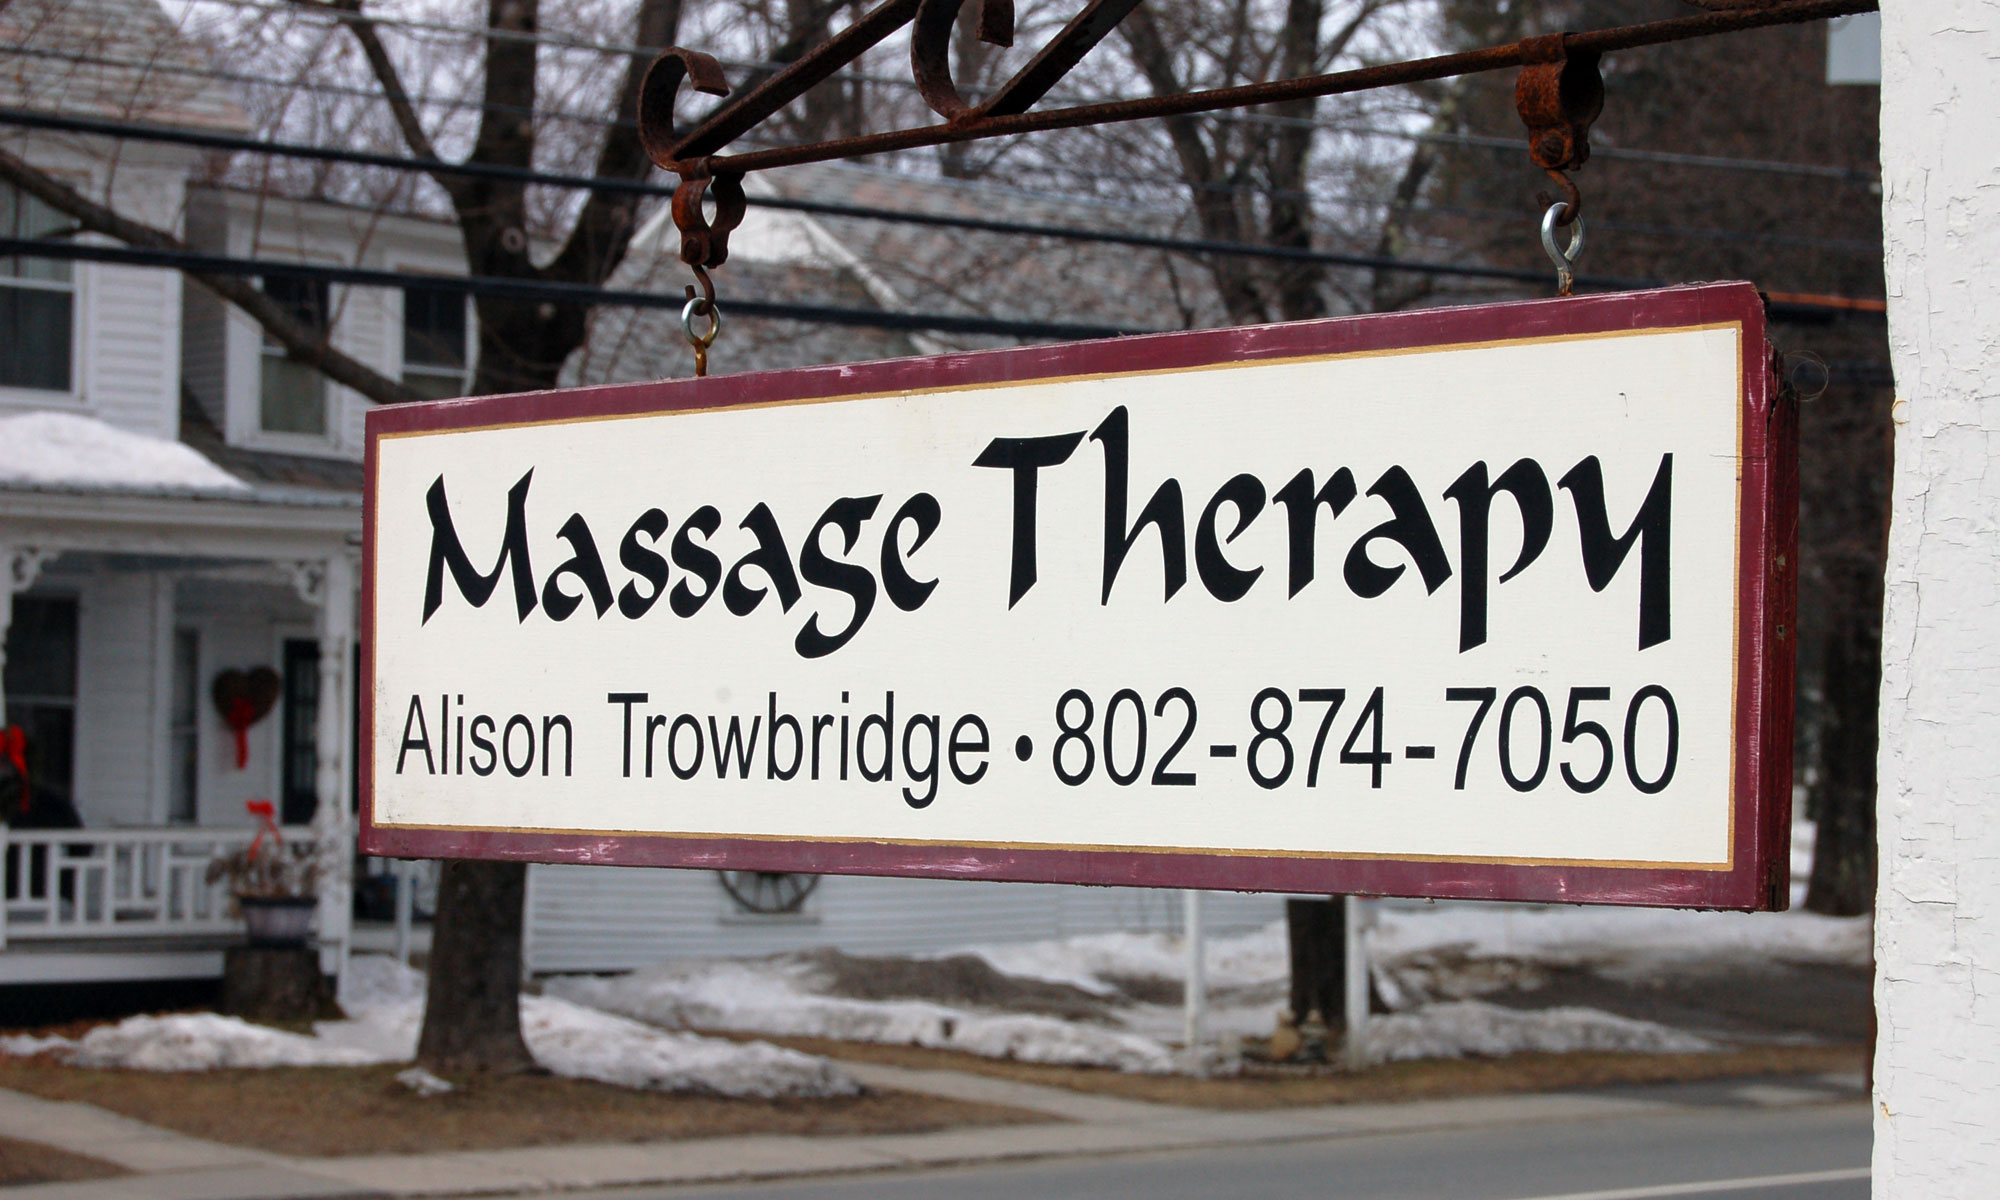 Alison-Trowbridge-Massage-Therapy-Sign